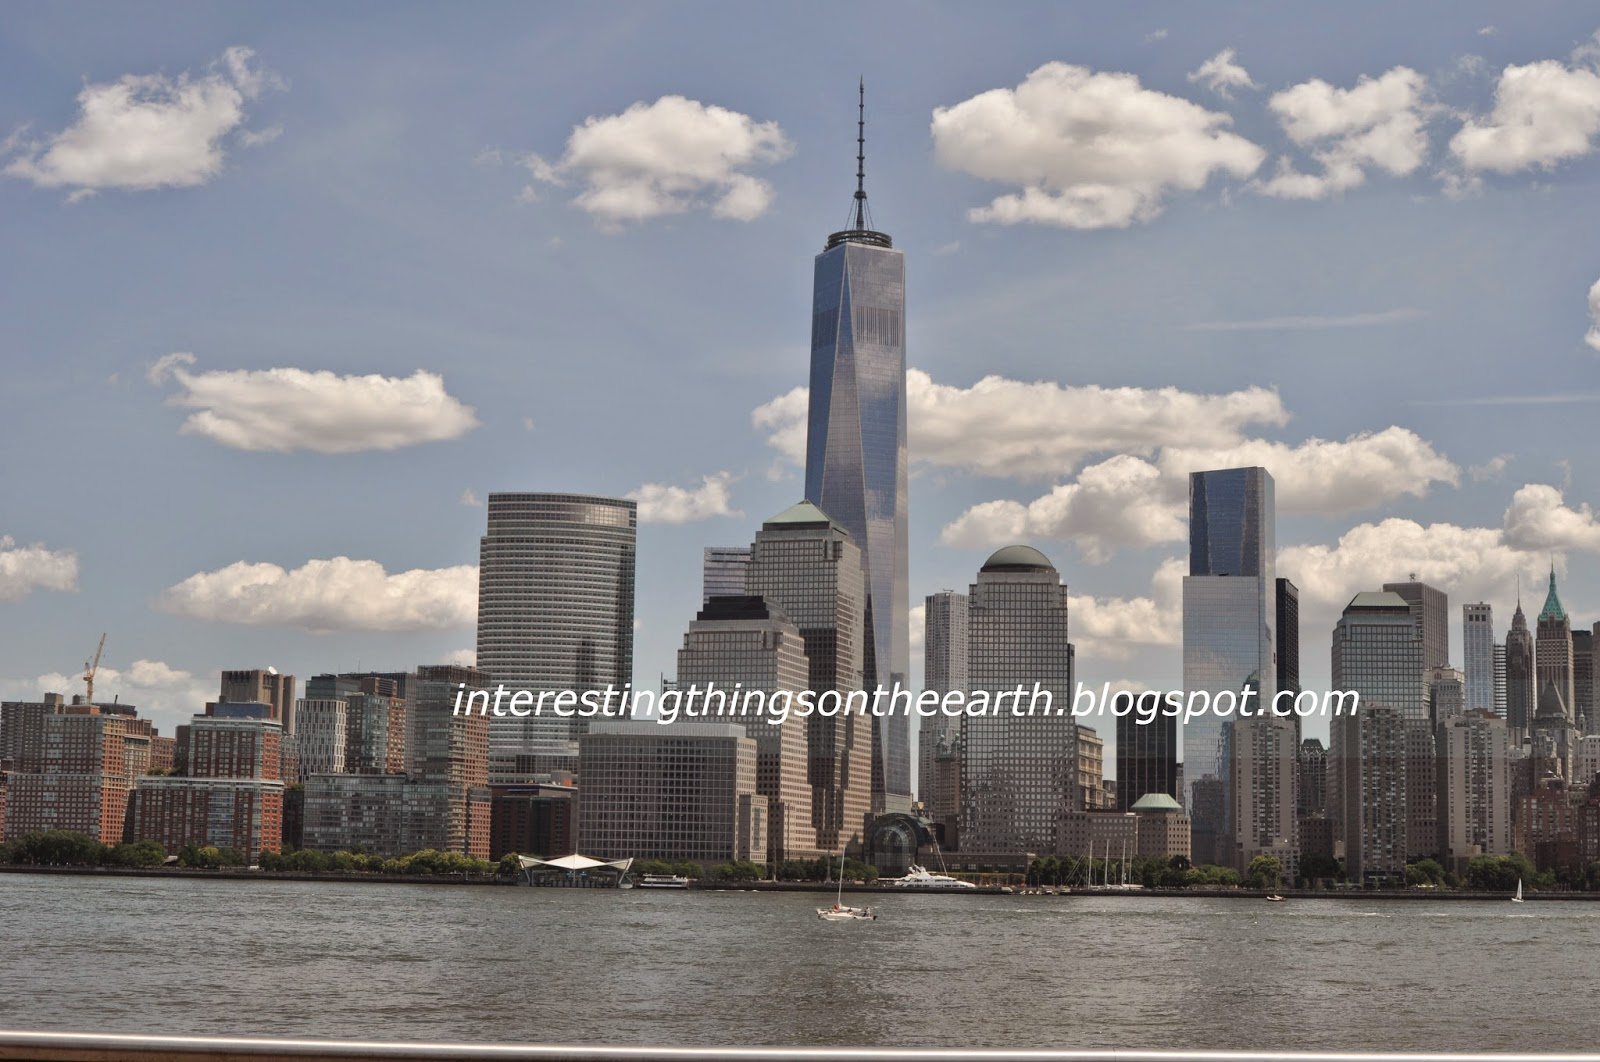 photo essay of walking along the hudson river in jersey city  skyline of manhattan from jersey city